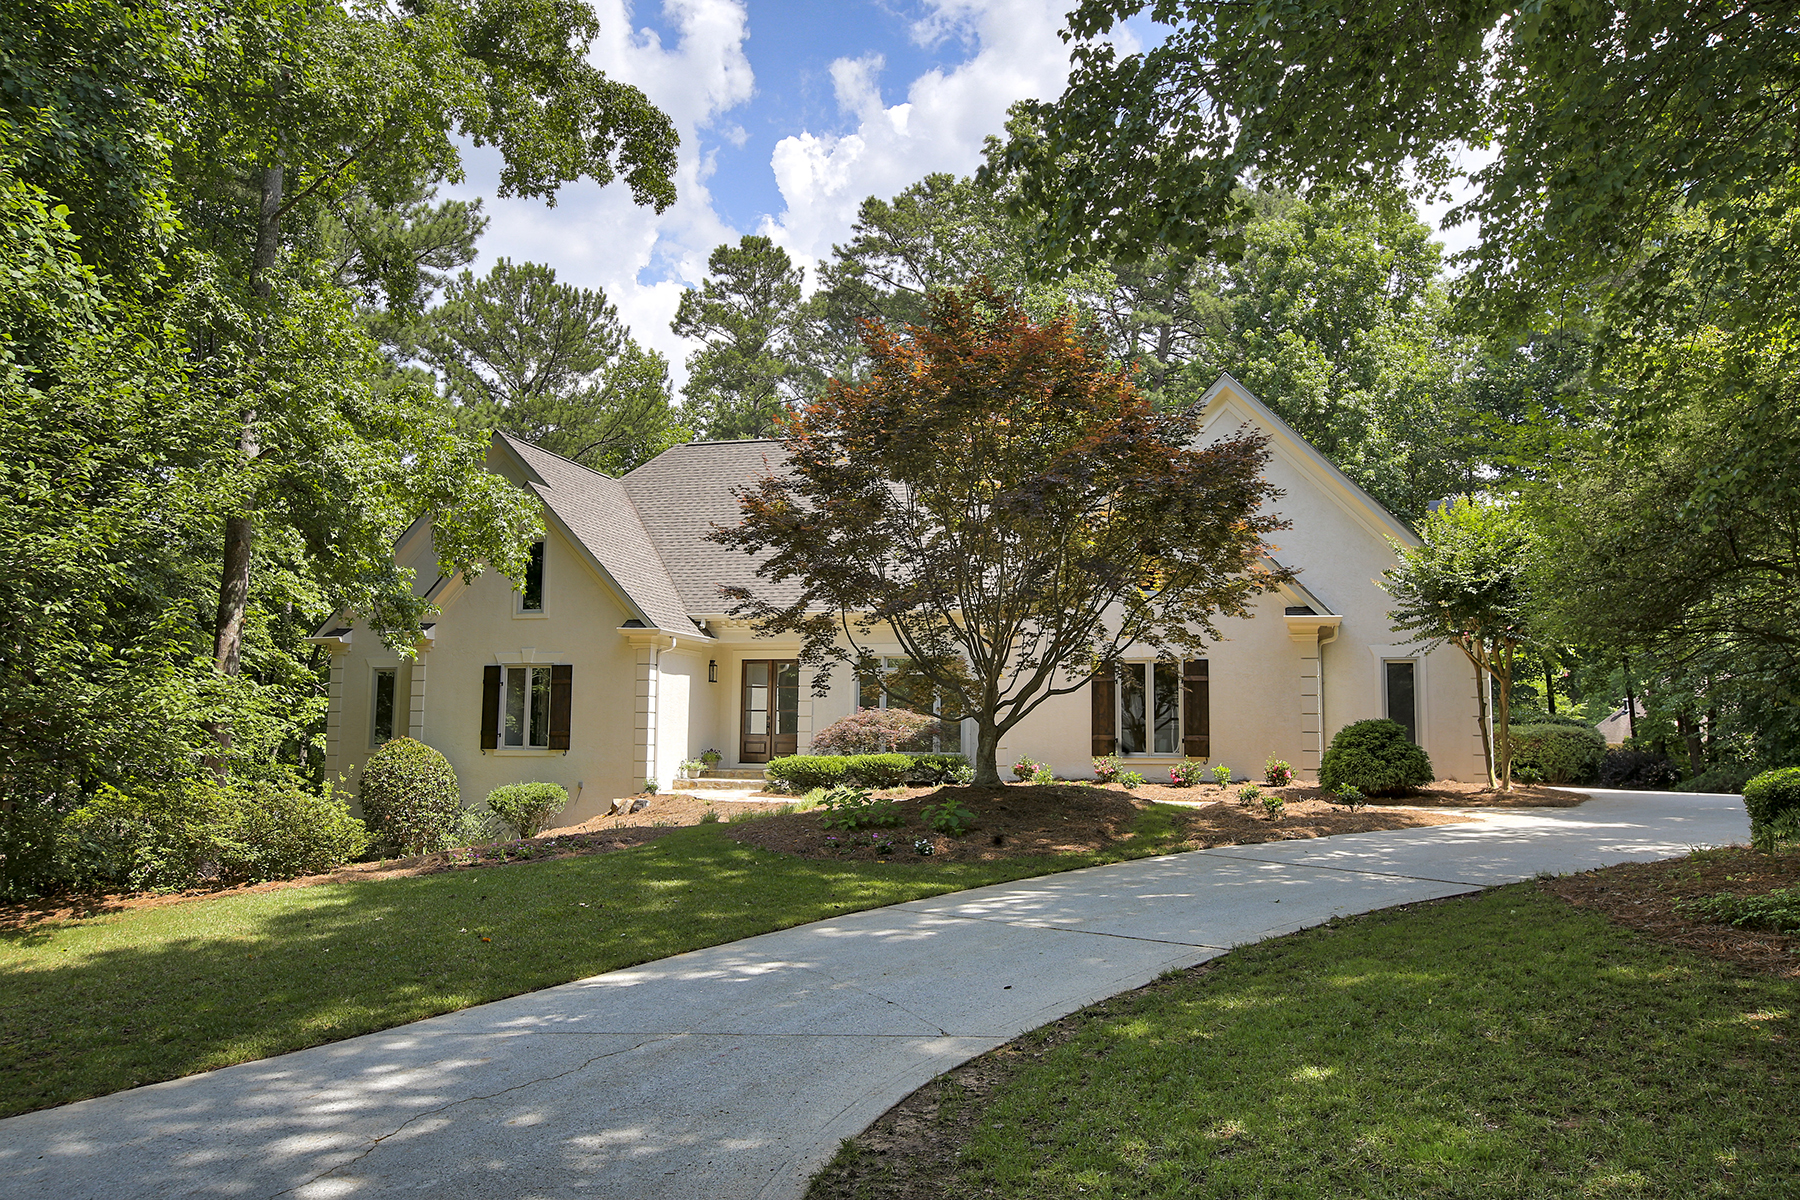 Single Family Home for Sale at Beautifully Remodeled Luxury Ranch In Country Club Of The South On Private Lot 4395 Old Wesleyan Woods Johns Creek, Georgia 30022 United States